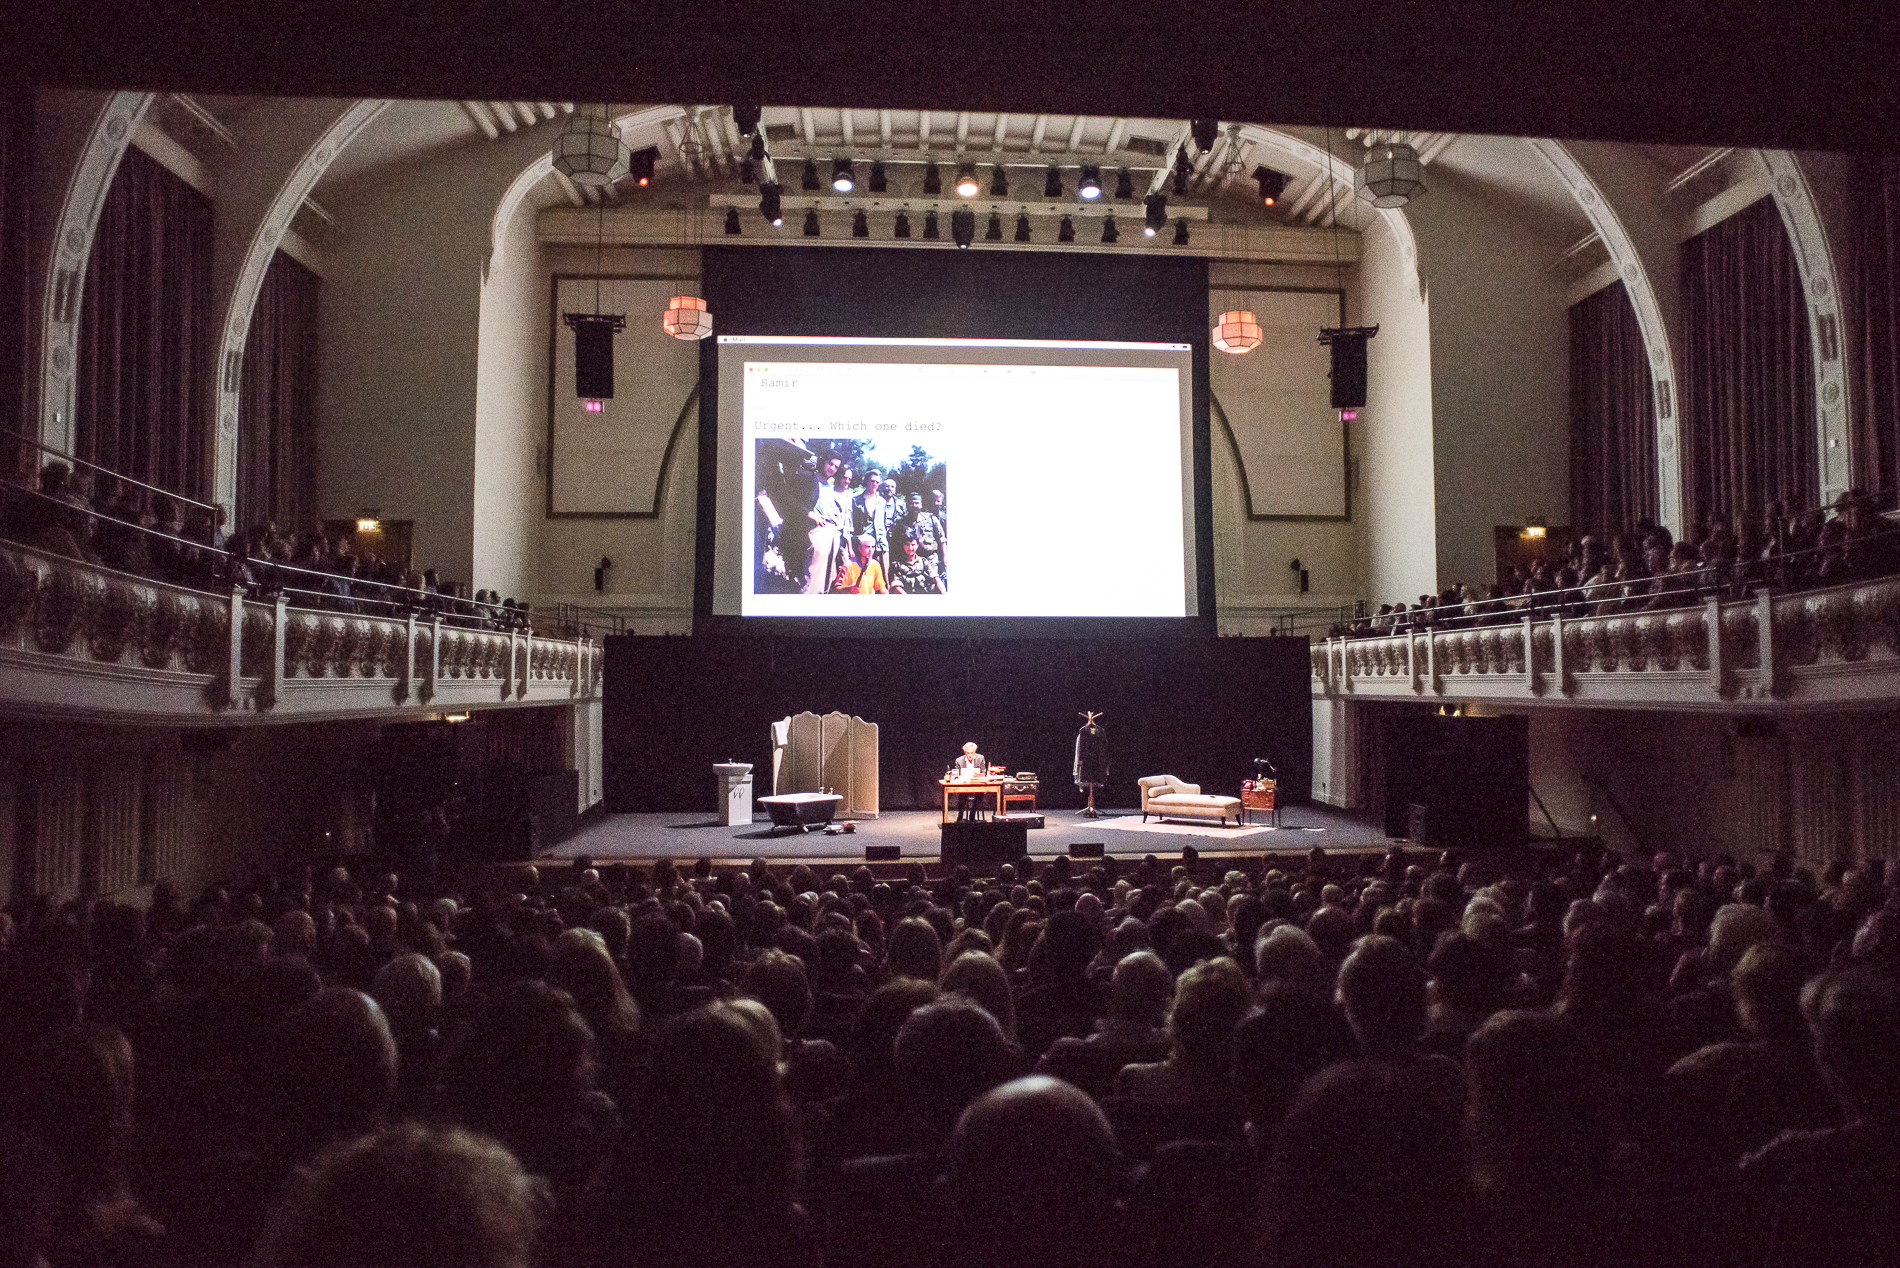 Représentation de «Last exit before Brexit», le 4 juin 2018, au Cadogan hall, à Londres.